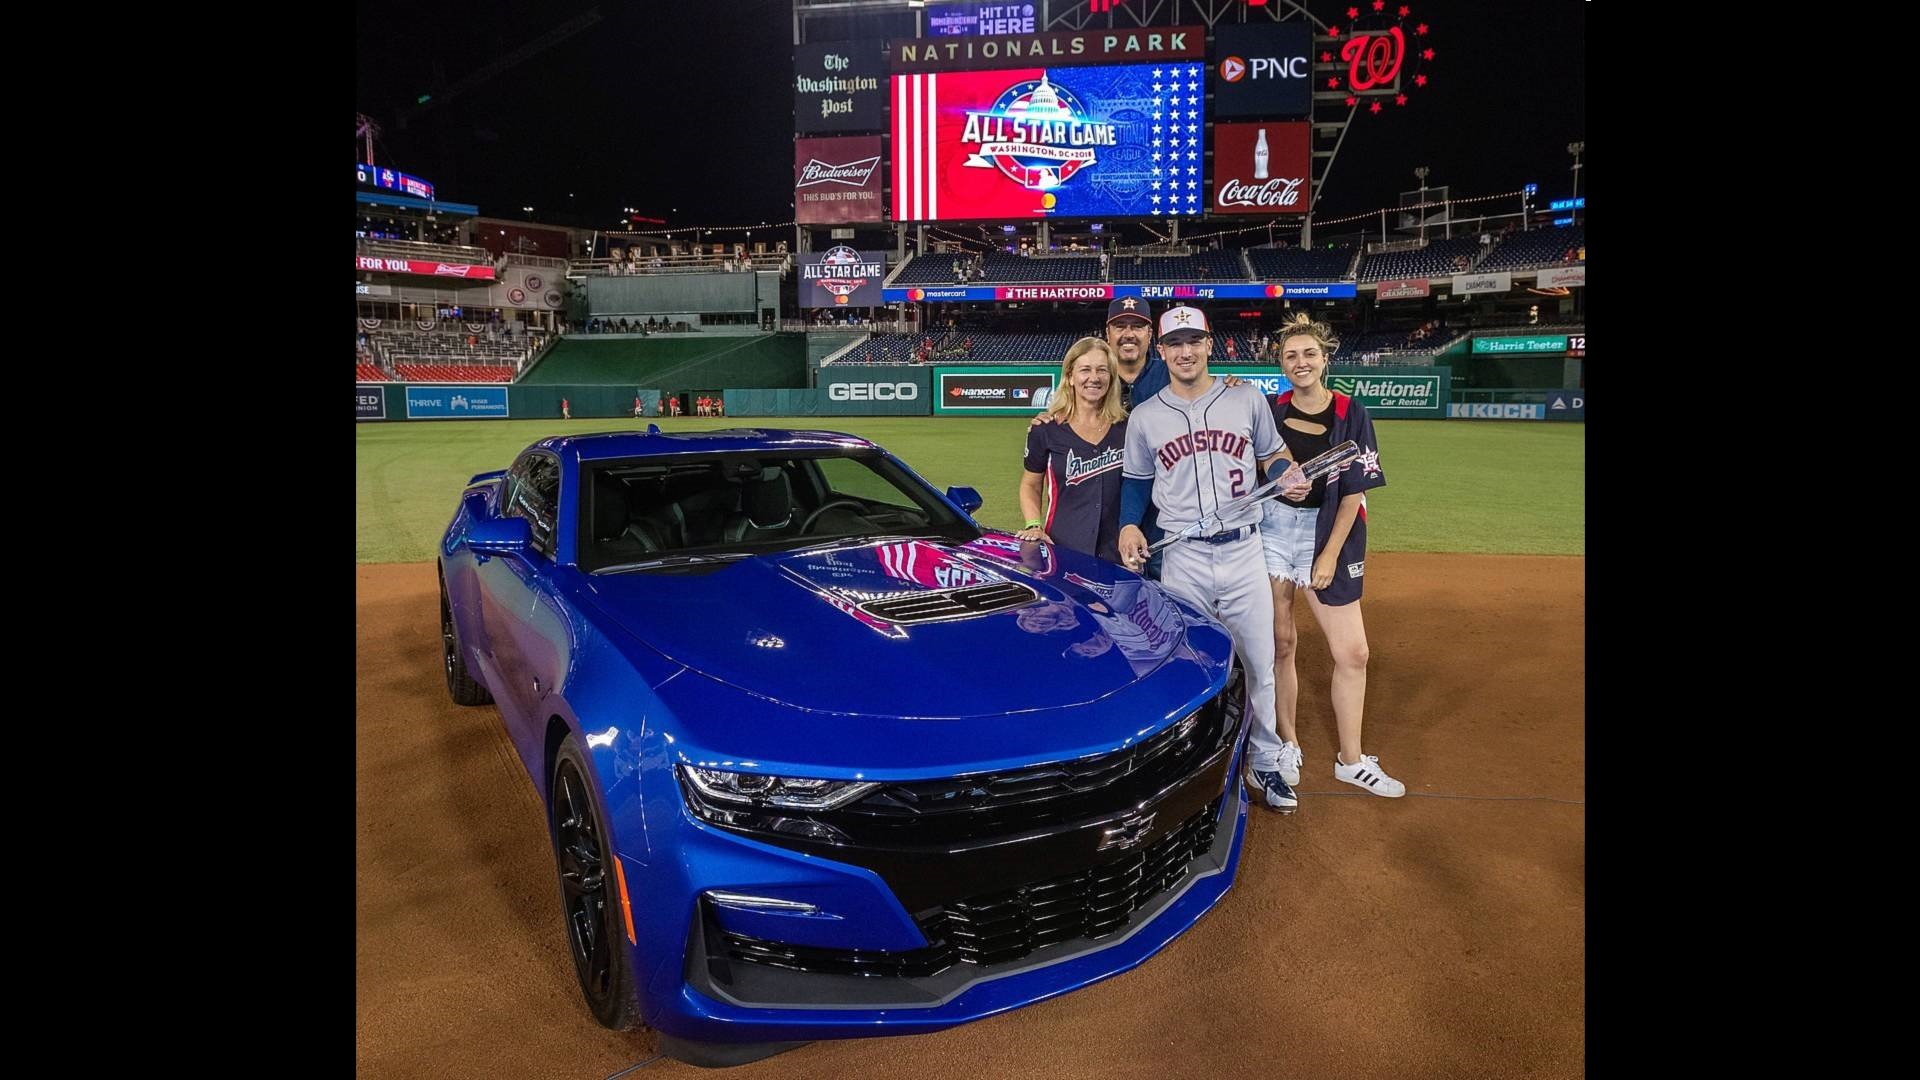 Mlb All Star Game Mvp Receives Brand New 2019 Chevrolet